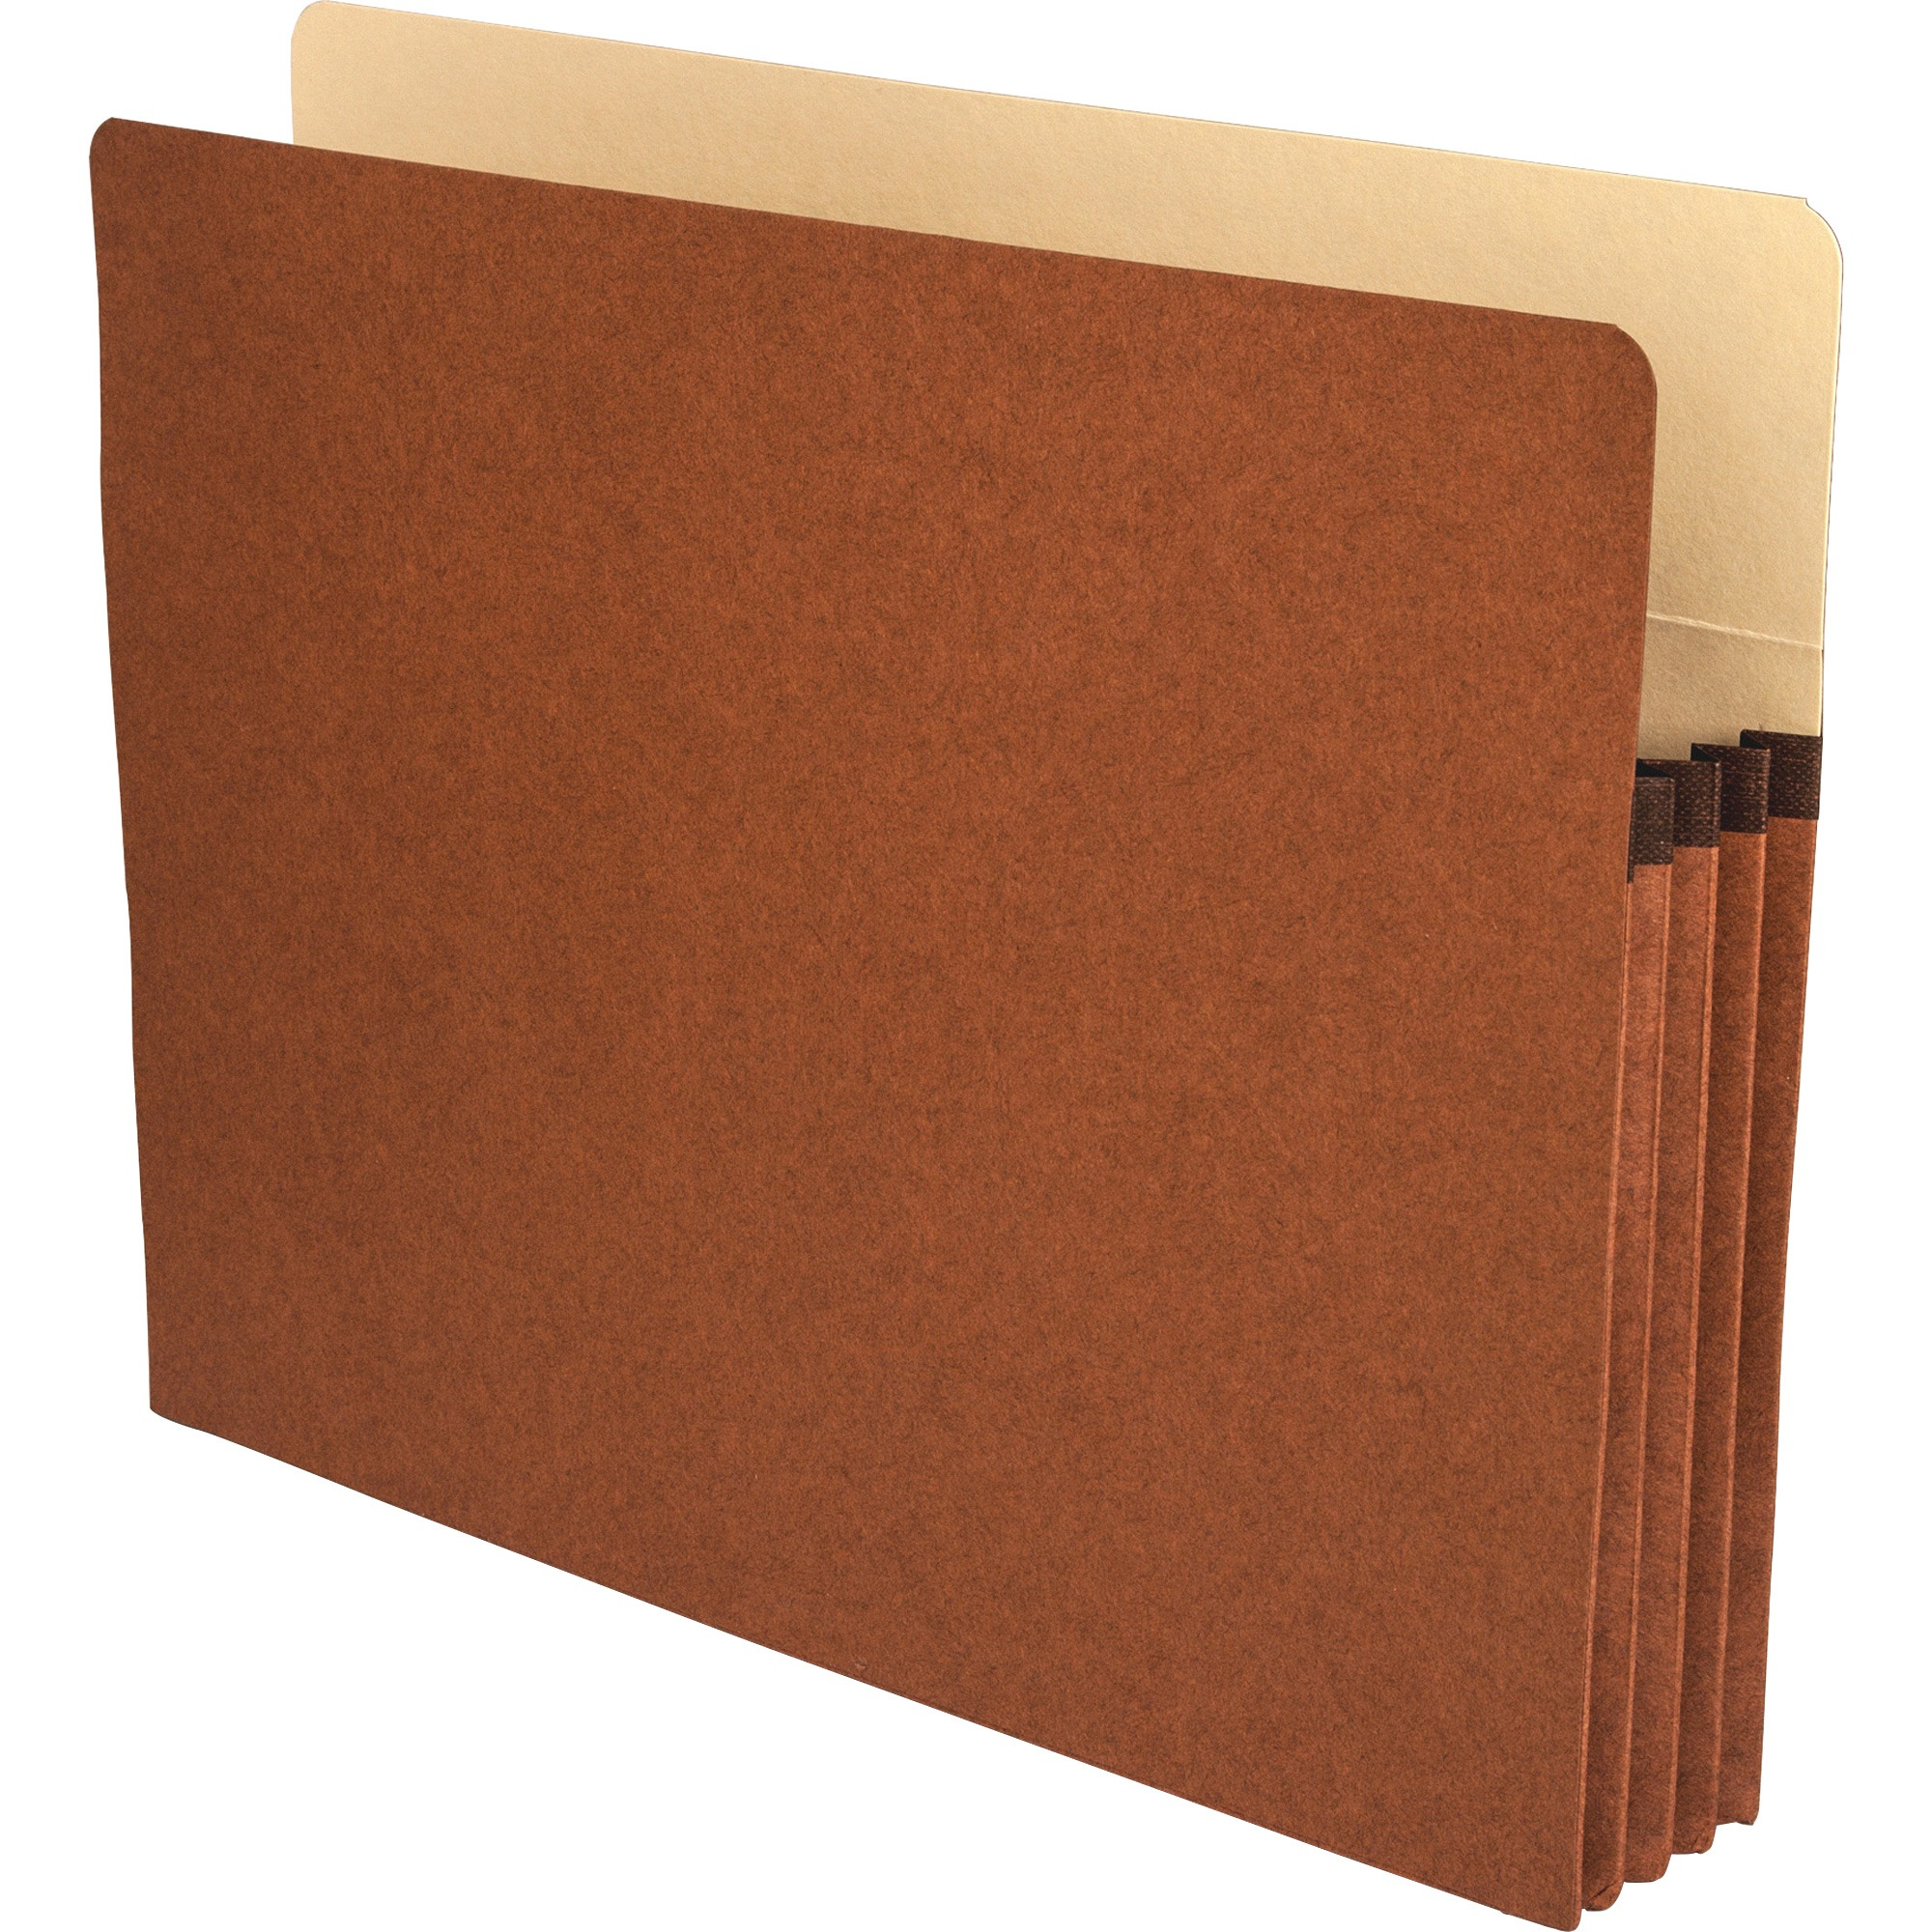 Business Source, BSN65791, Redrope Letter Expanding File Pockets, 25 / Box, Redrope